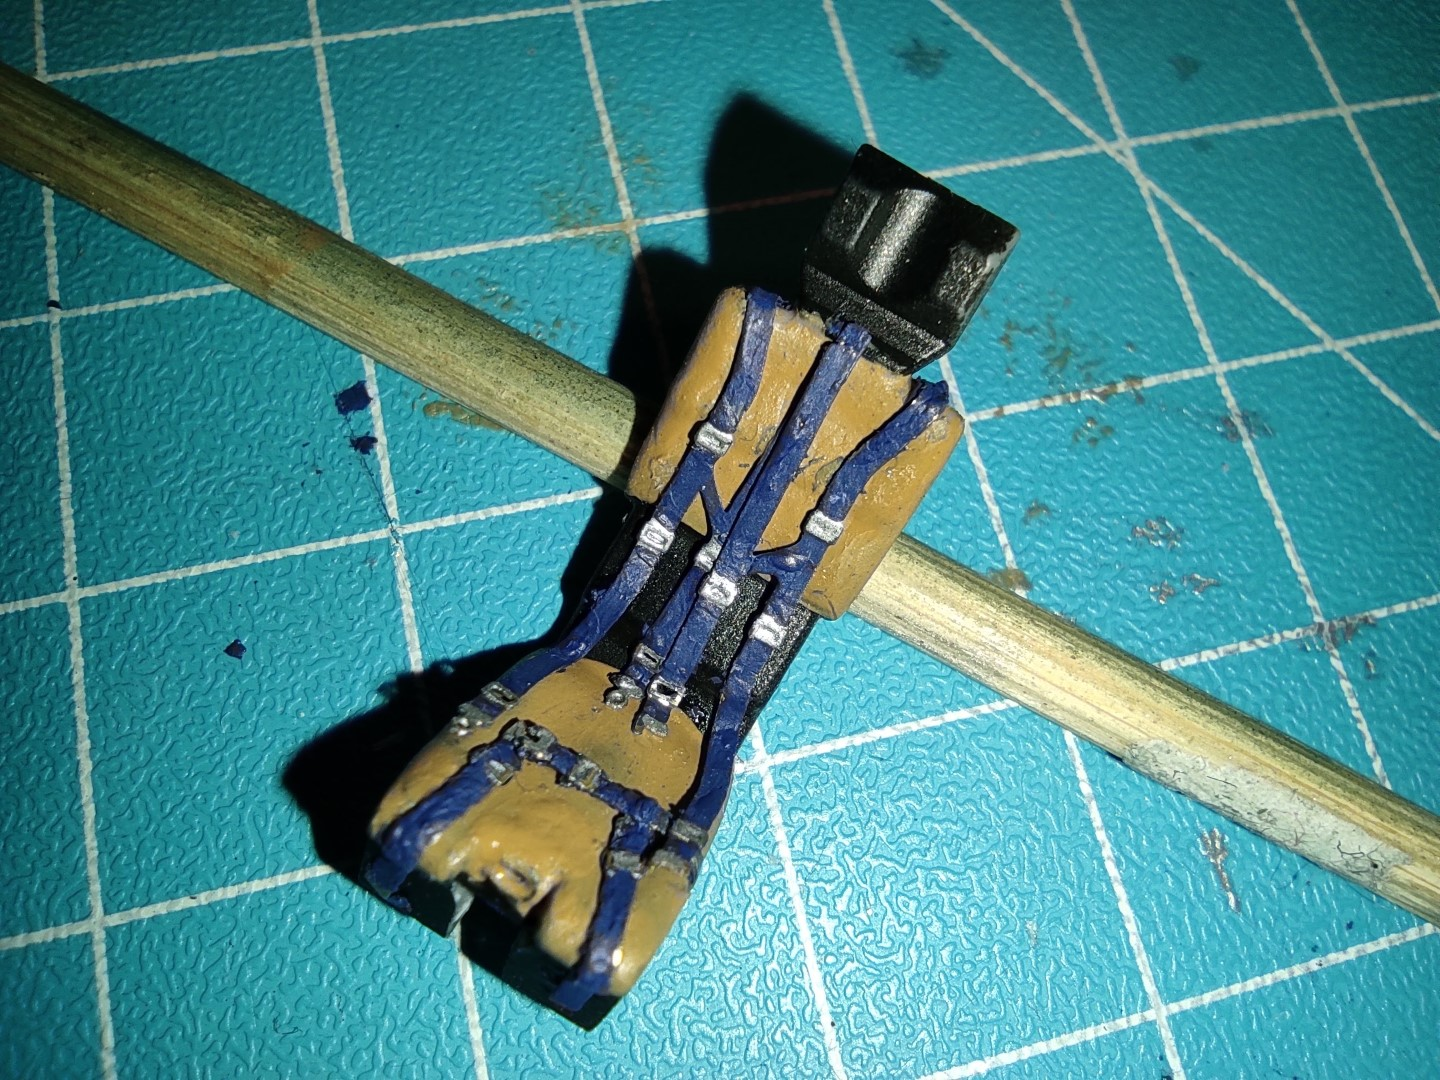 [Work-in-Progress] Airfix Gloster Meteor F.8 - Re-purposing some old F-104 seatbelts.